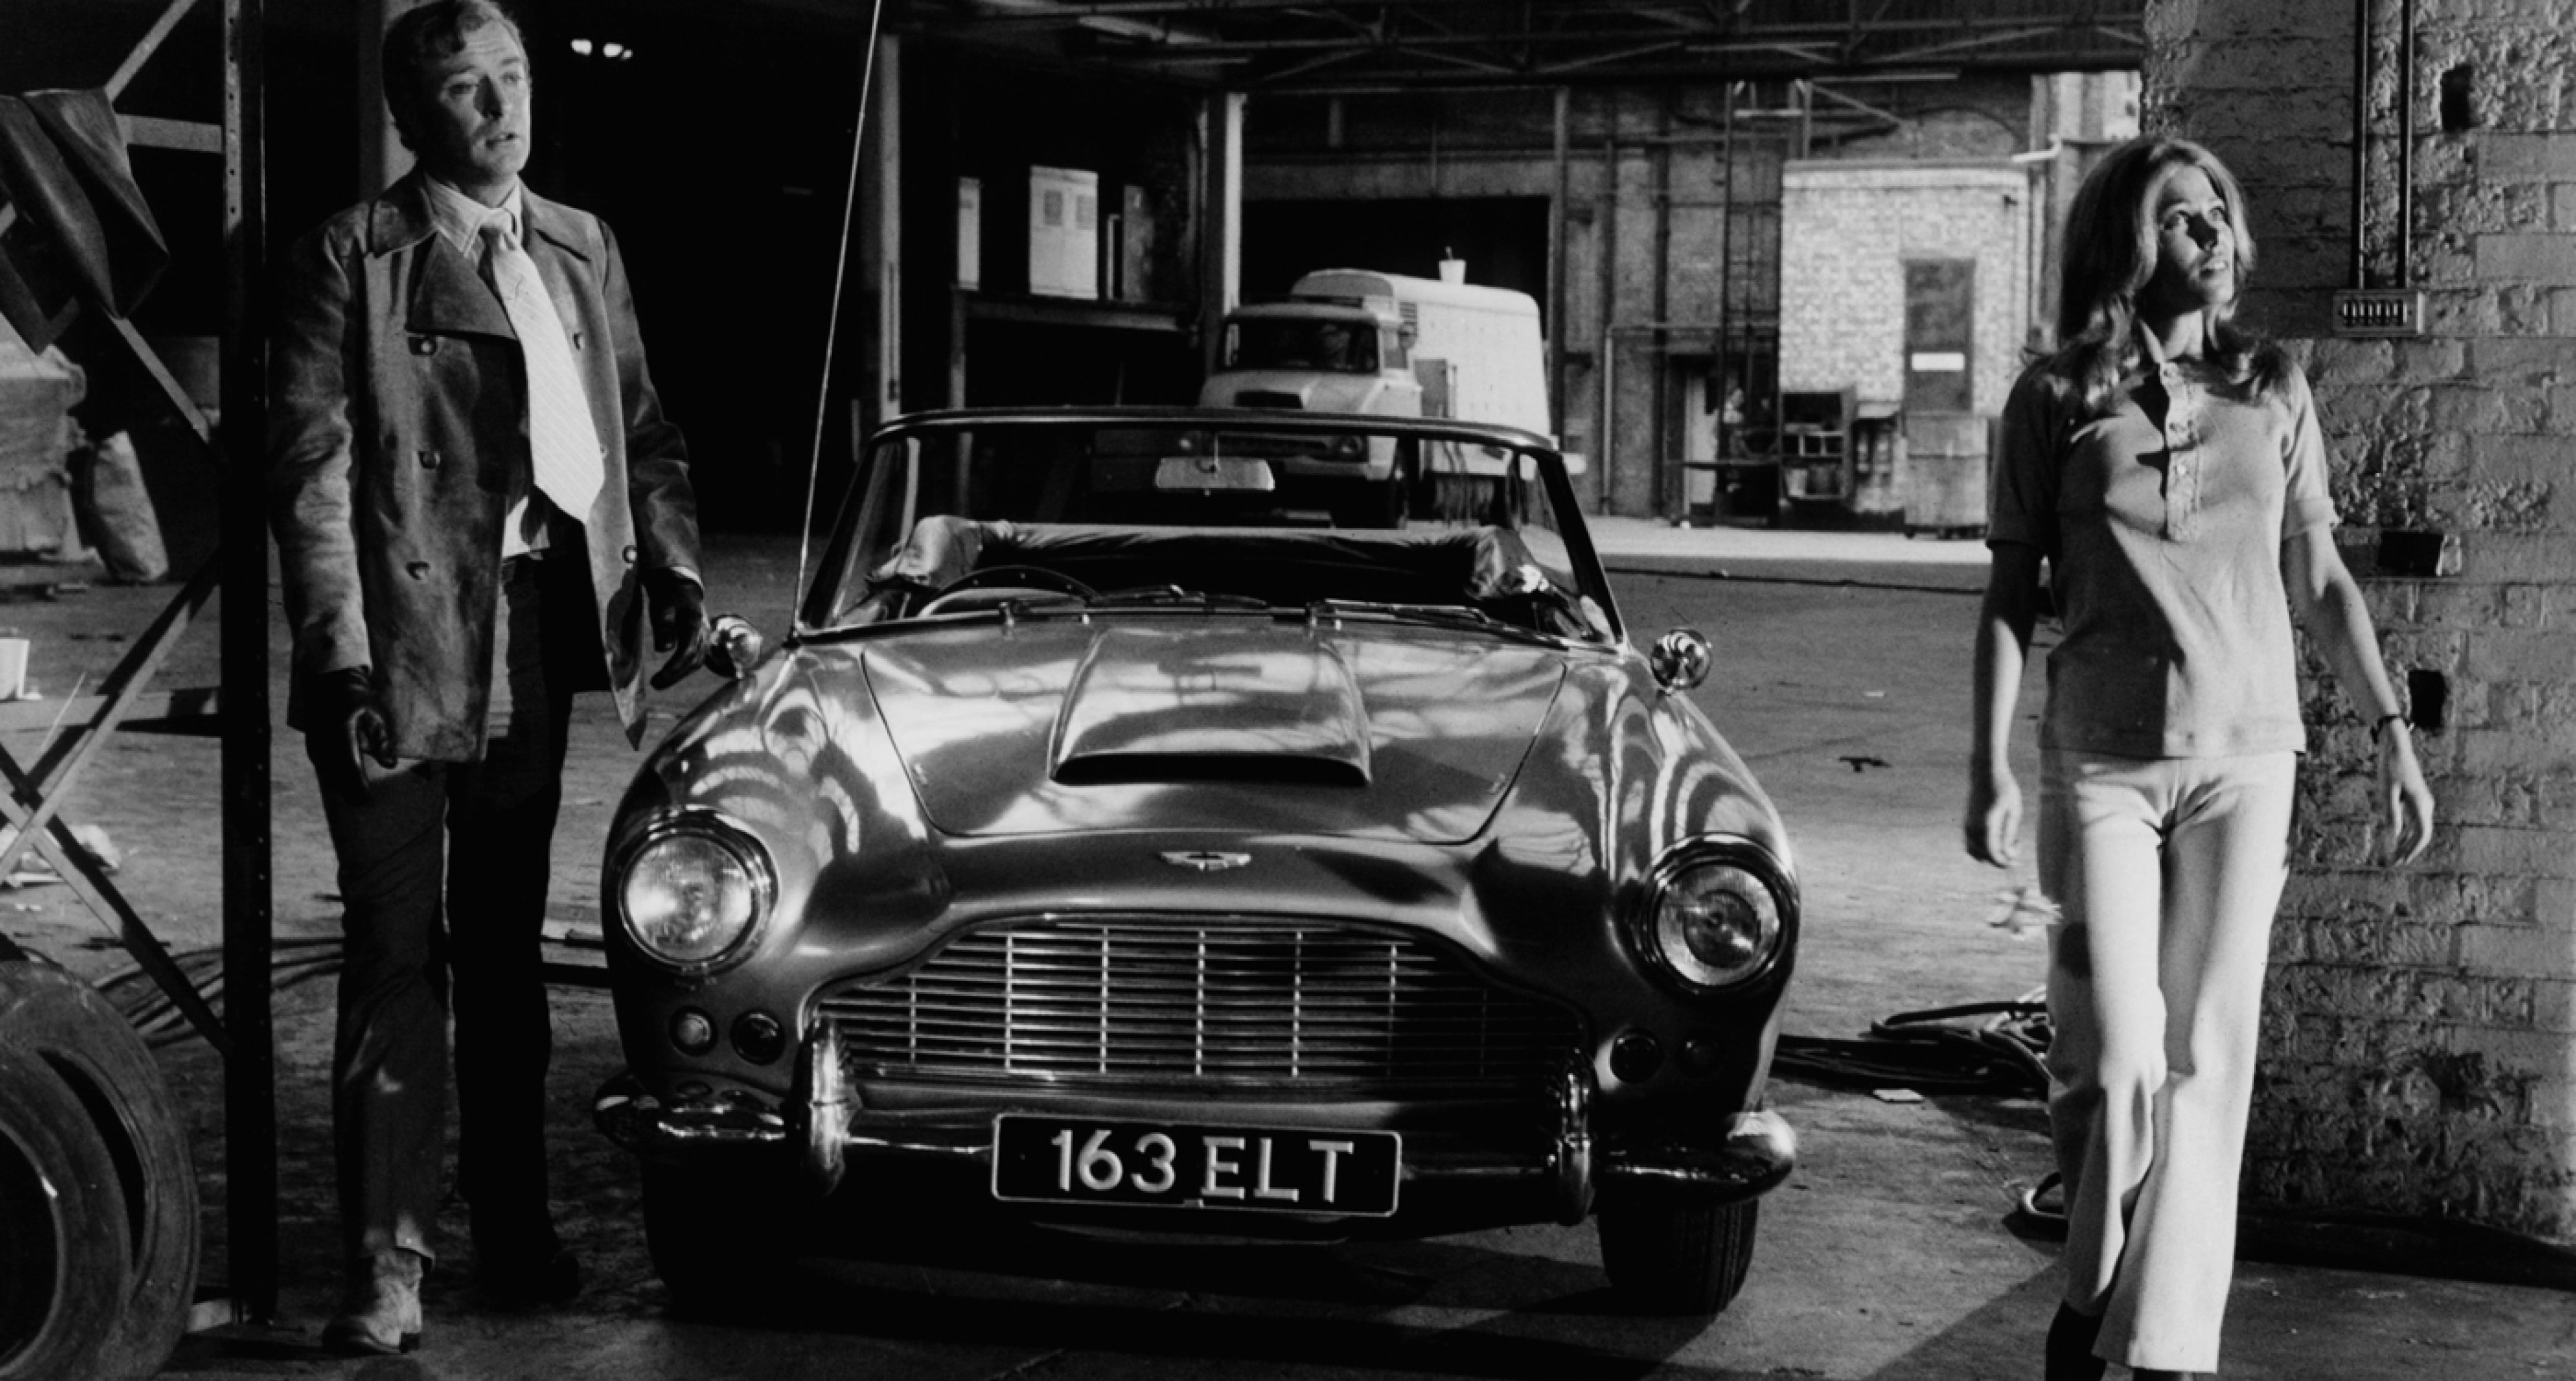 Michael Caine and an Aston Martin DB4 in 'The Italian Job' (1969).